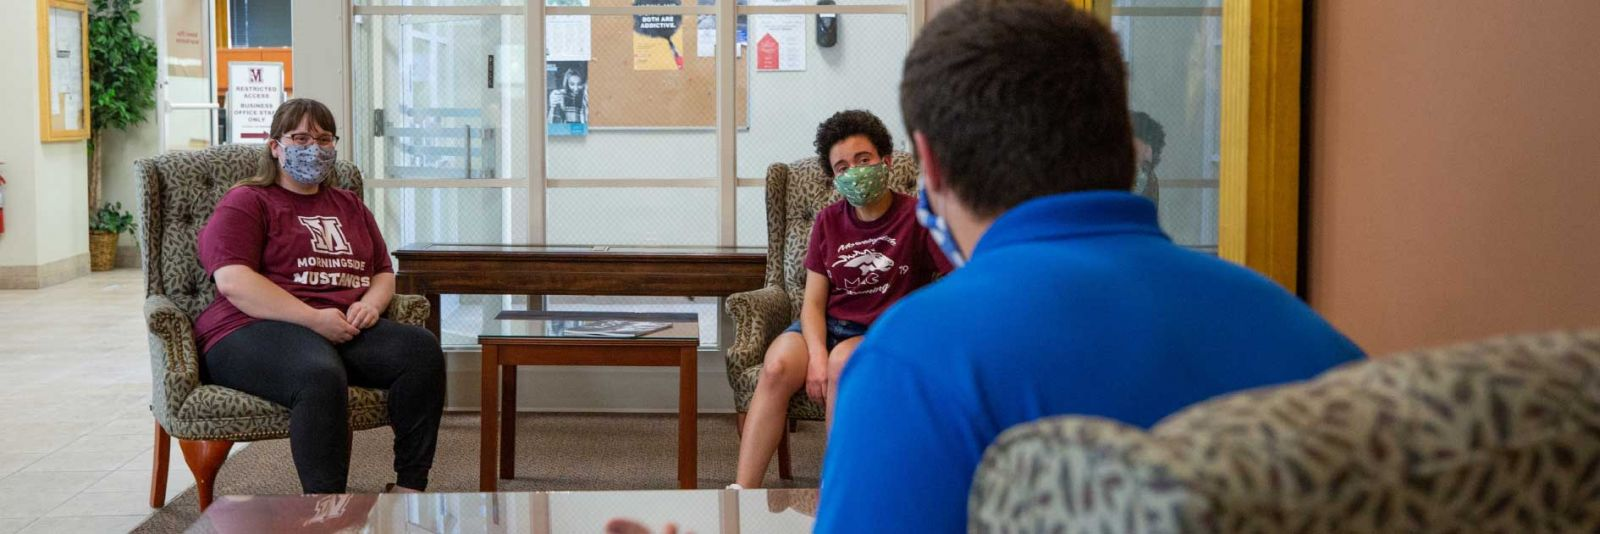 admissions counselor meeting with student with mask